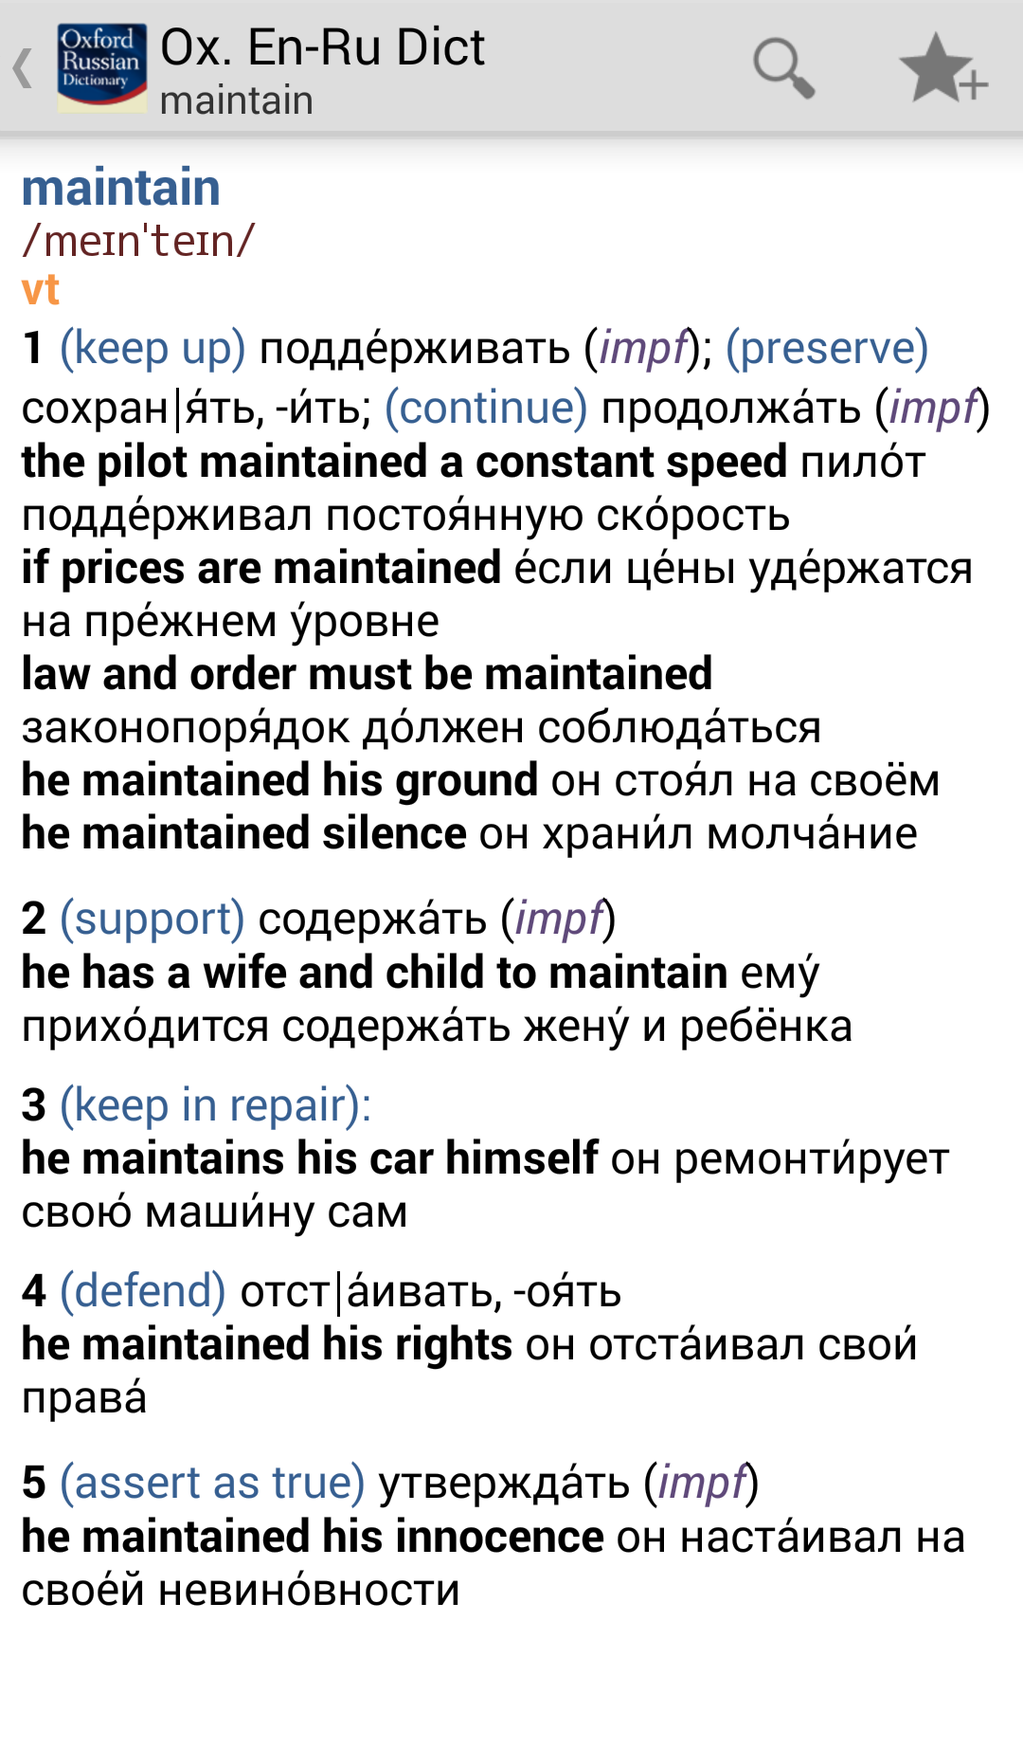 Oxford Russian Dictionary Screenshot 1